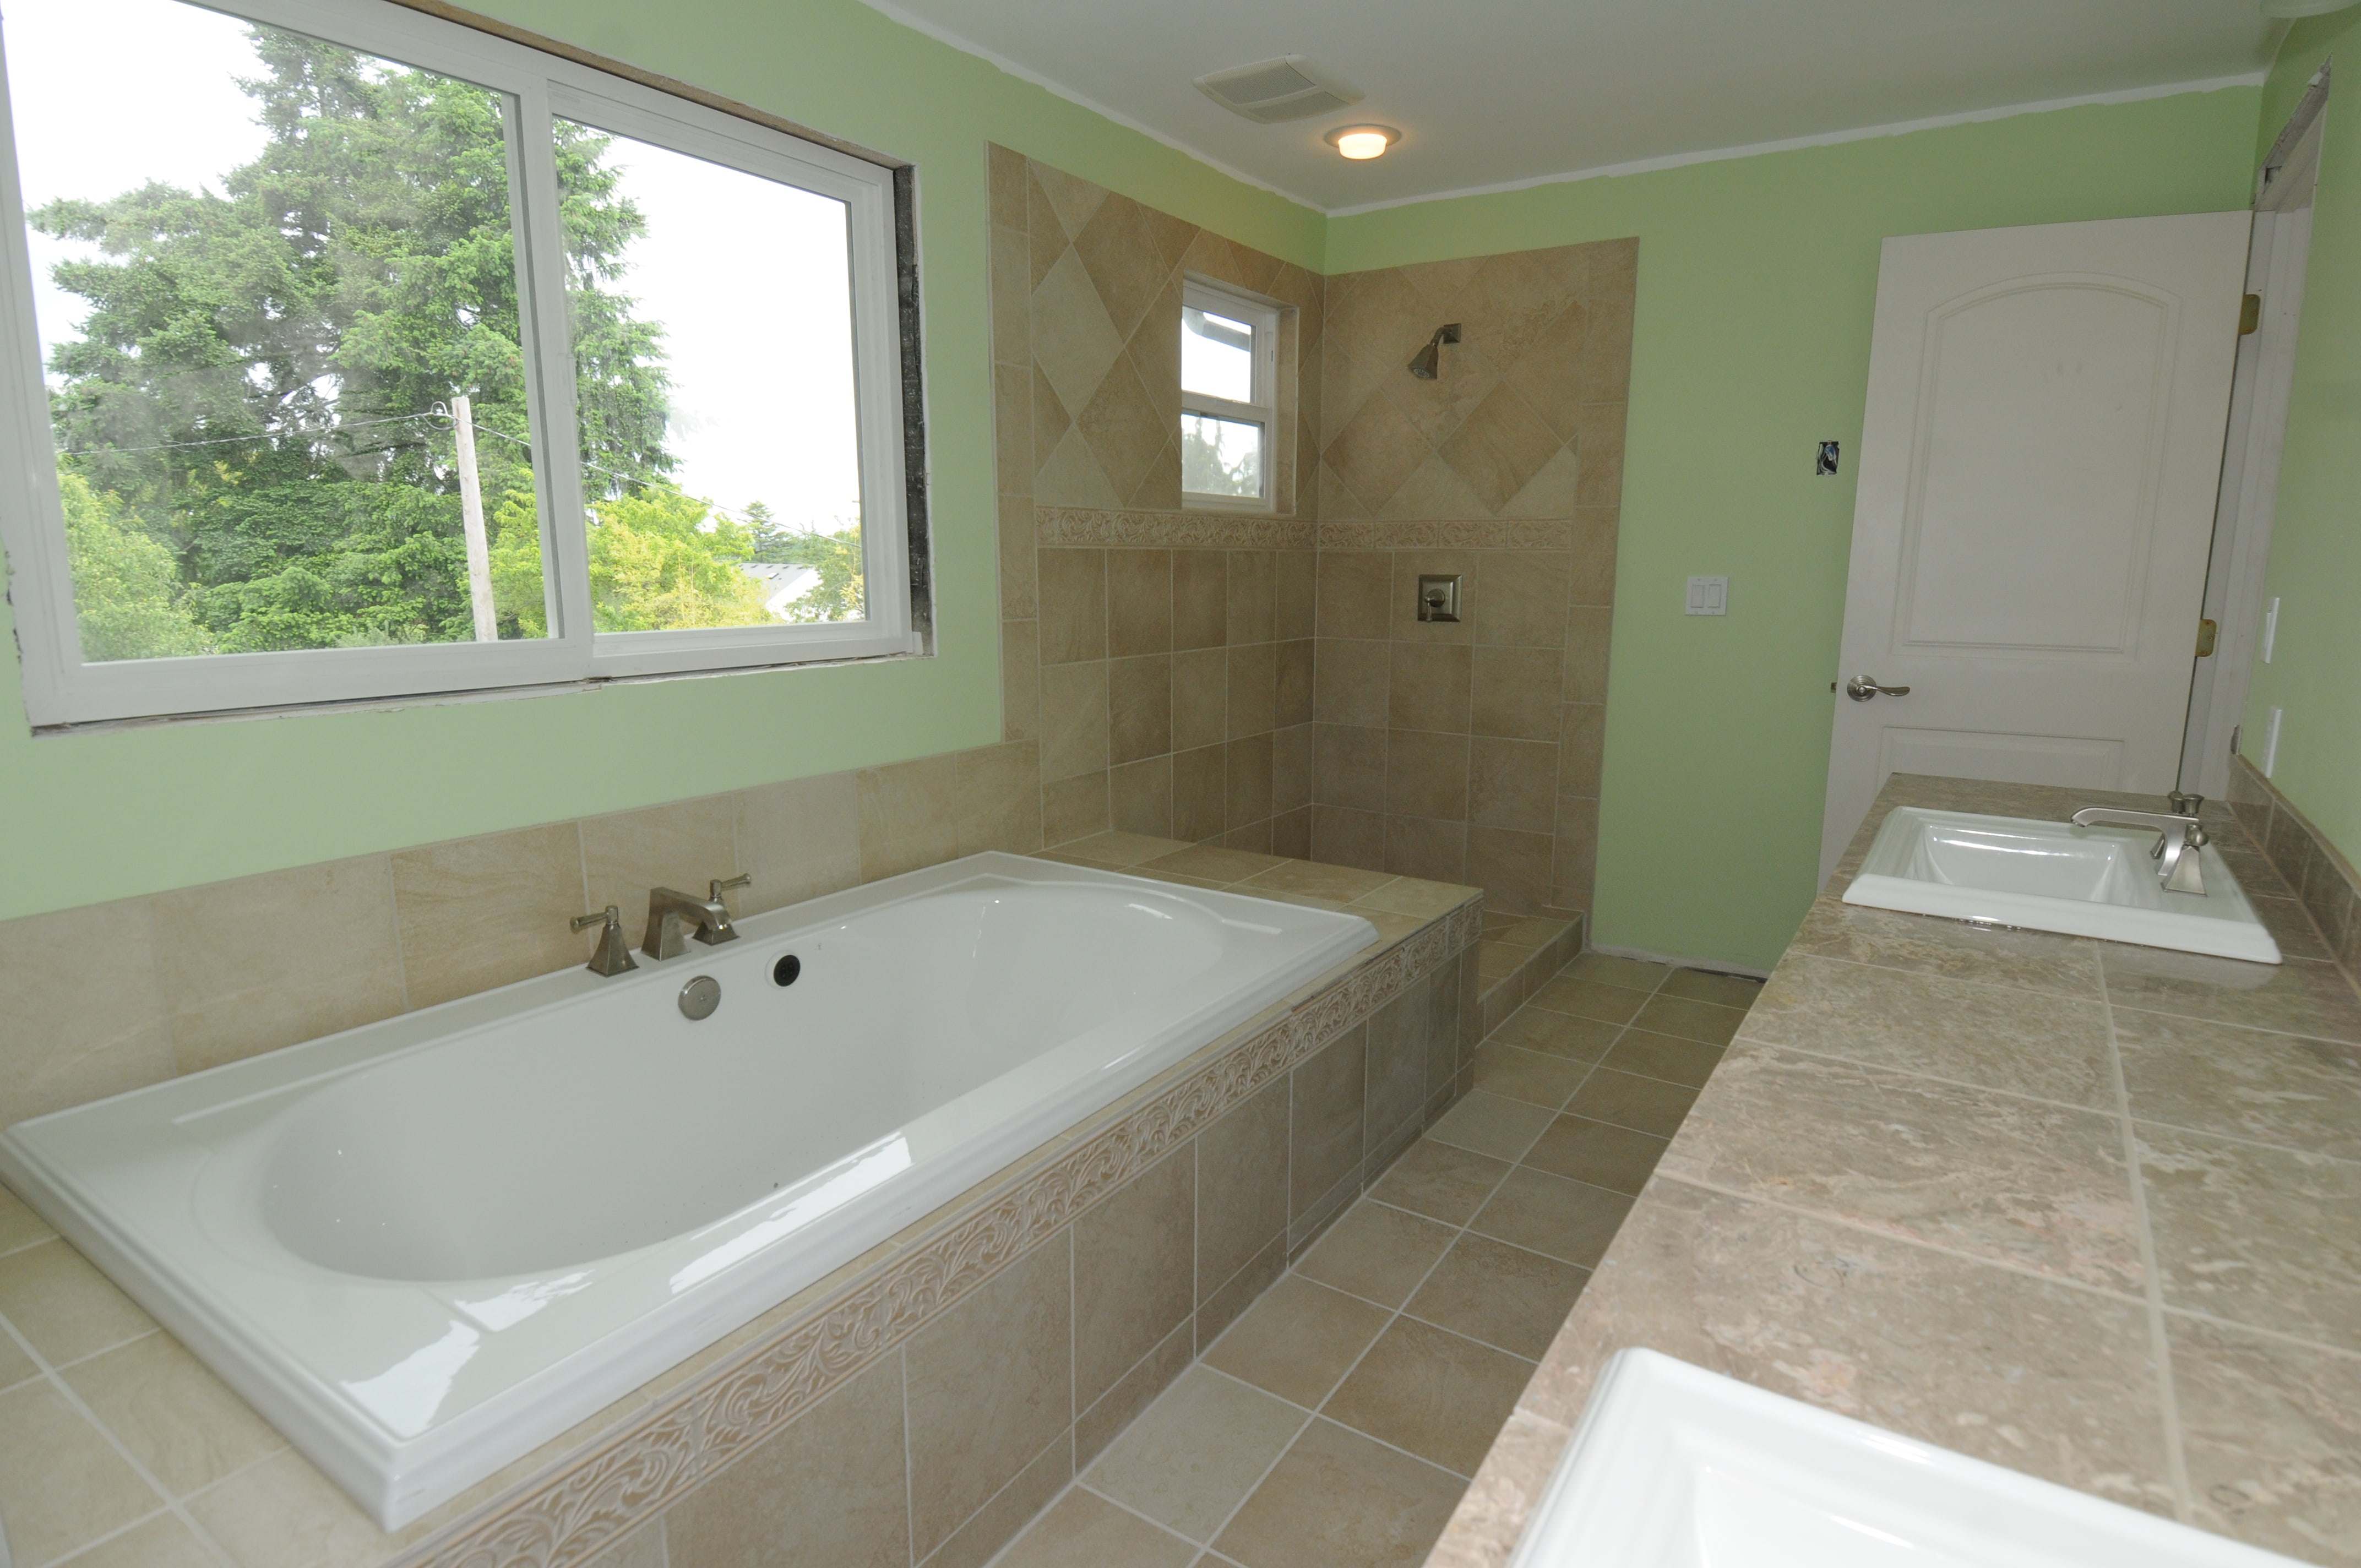 Master bath at the newly-remodeled Mavis residence